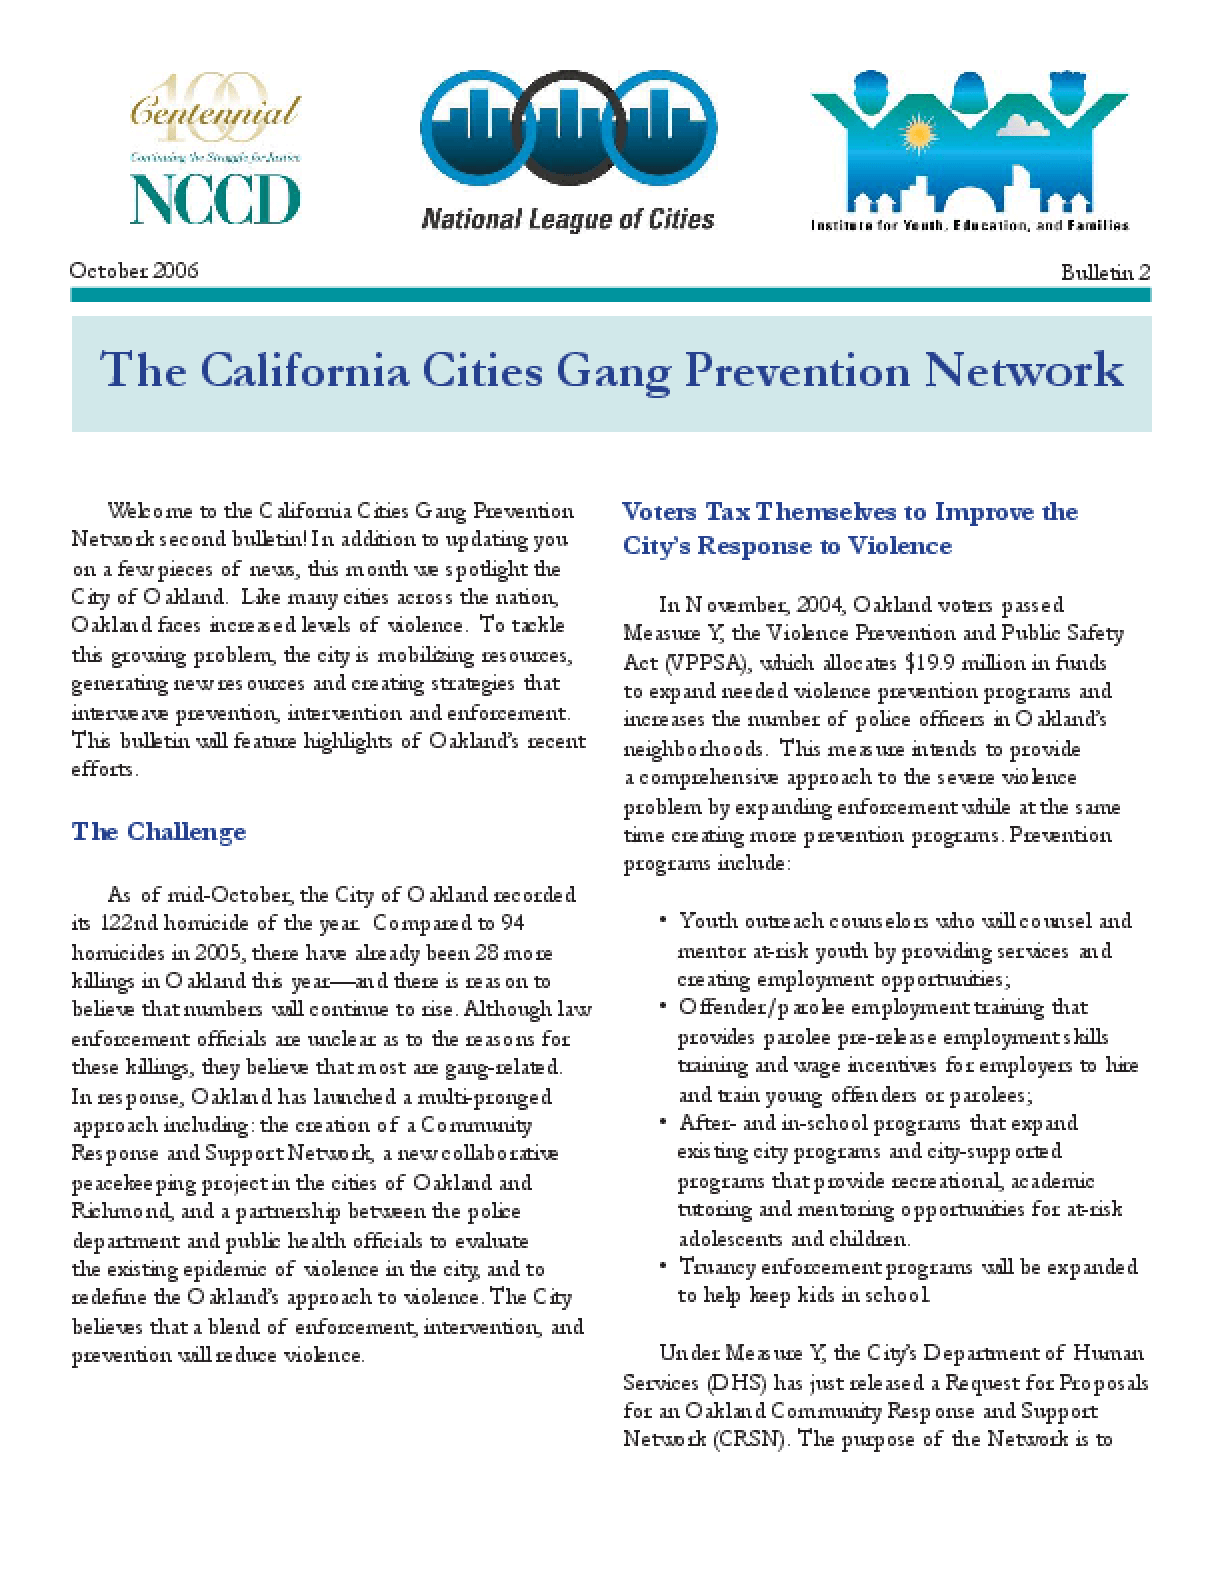 California Cities Gang Prevention Network Bulletin (Bulletin 2)